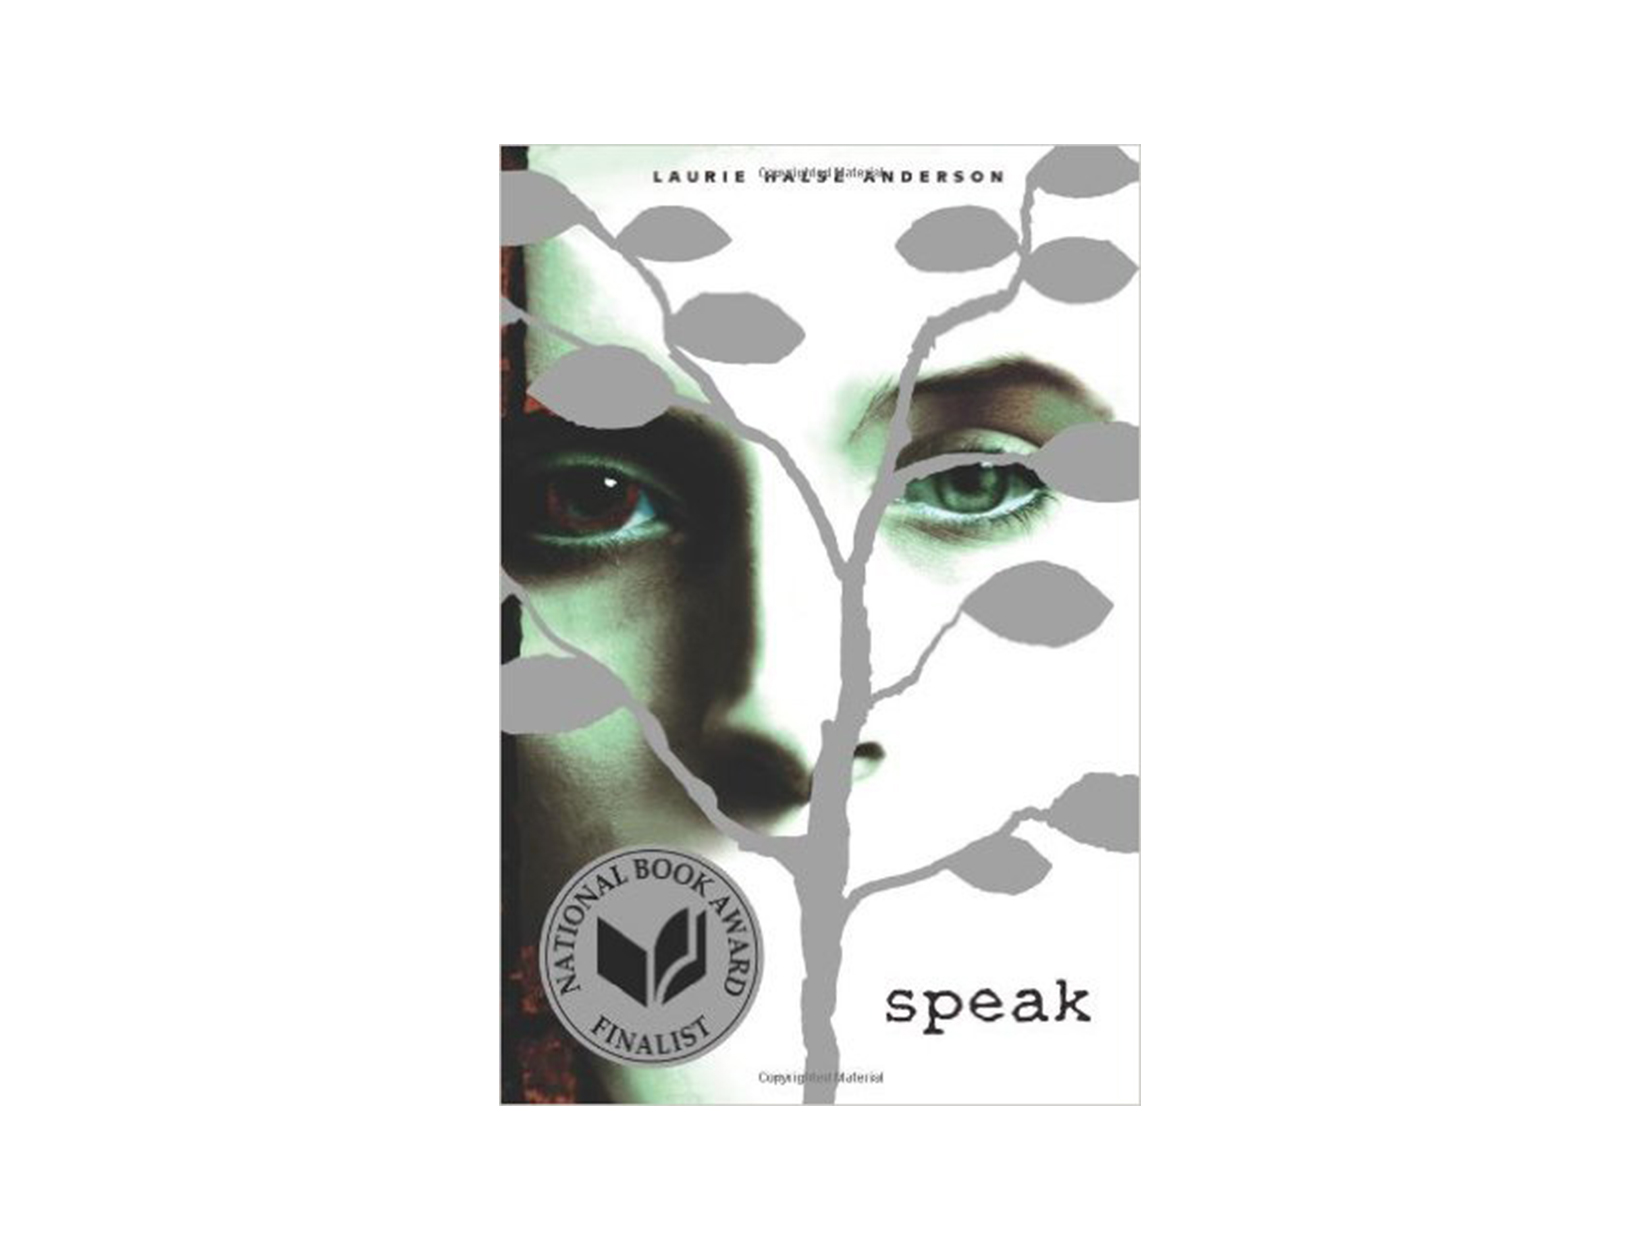 Speak by Laurie Halse Anderson